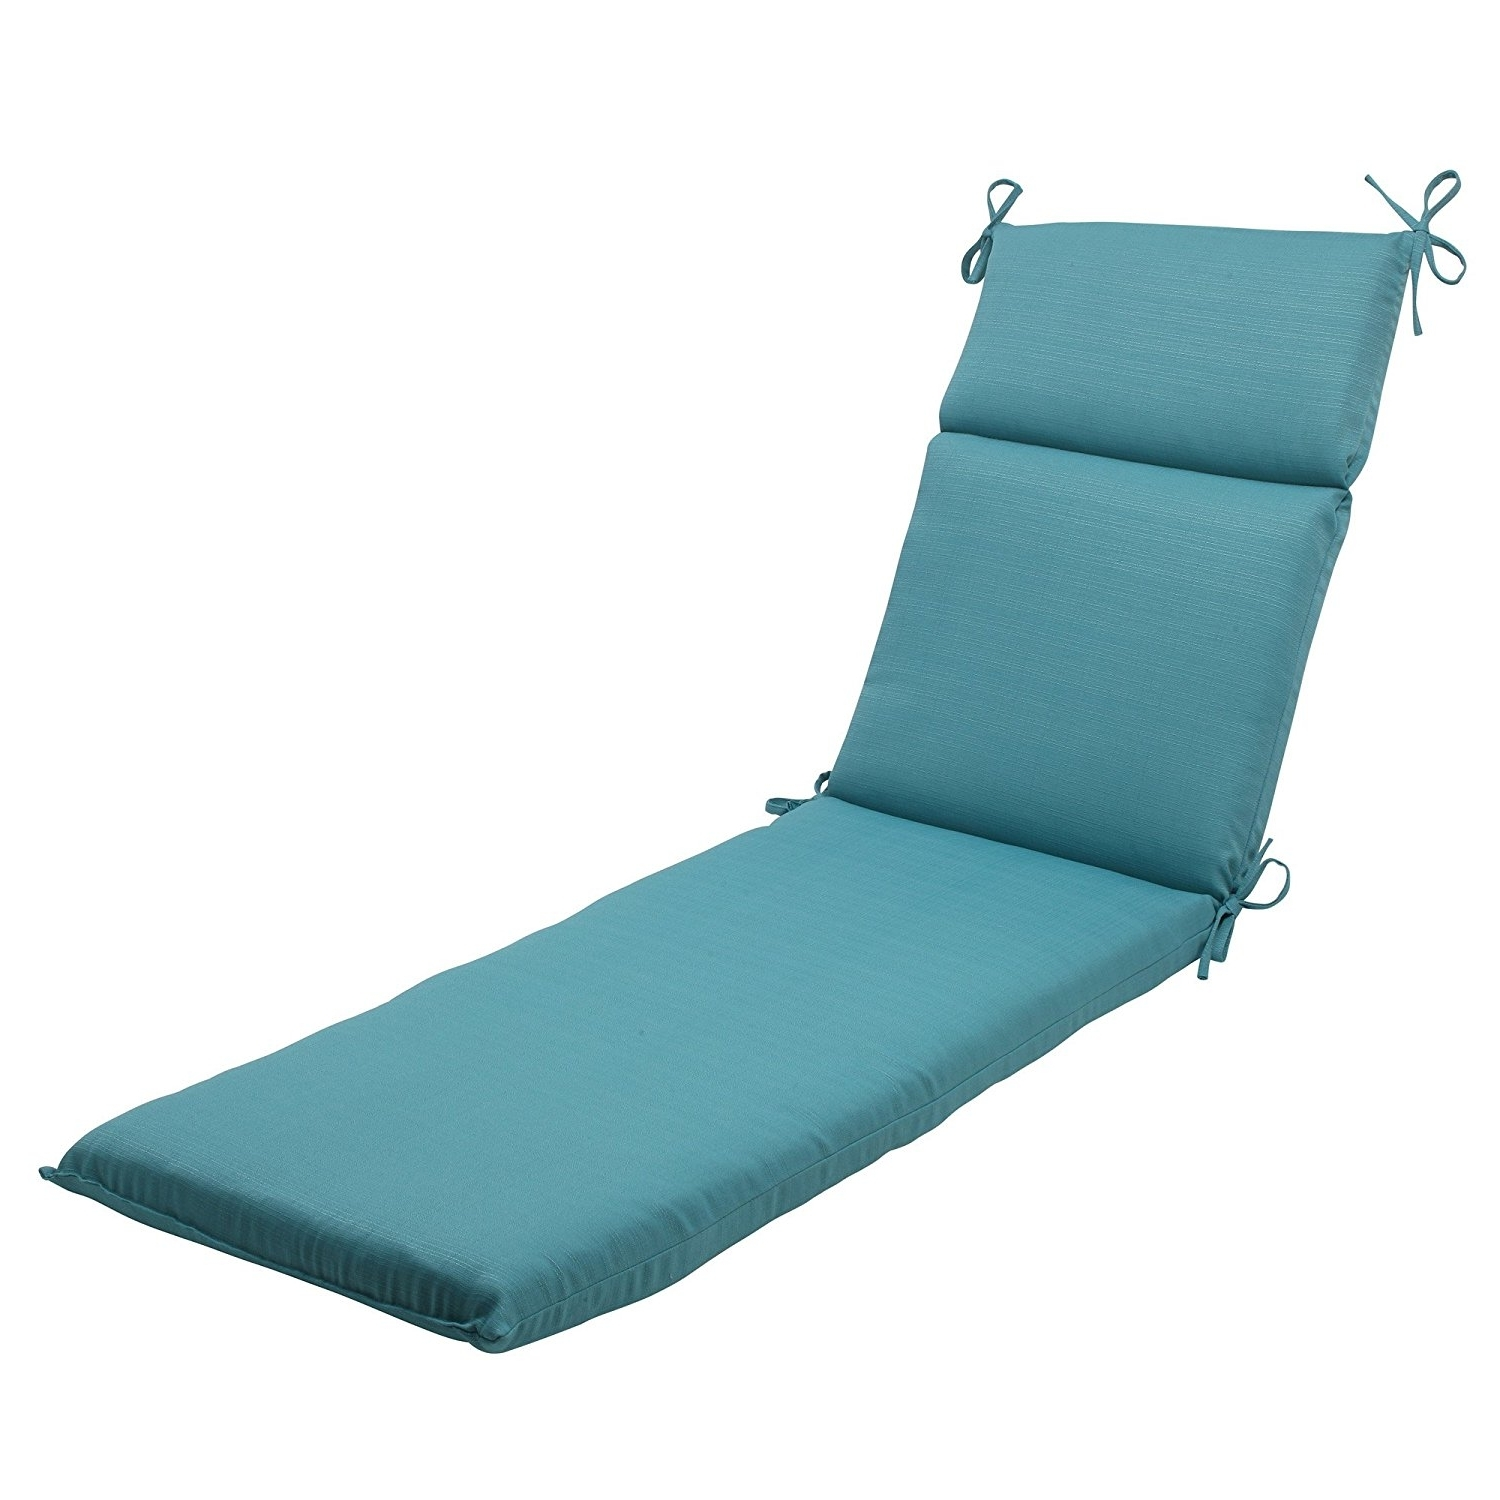 Amazon: Pillow Perfect Indoor/outdoor Forsyth Chaise Lounge Regarding Recent Outdoor Chaise Cushions (View 2 of 15)